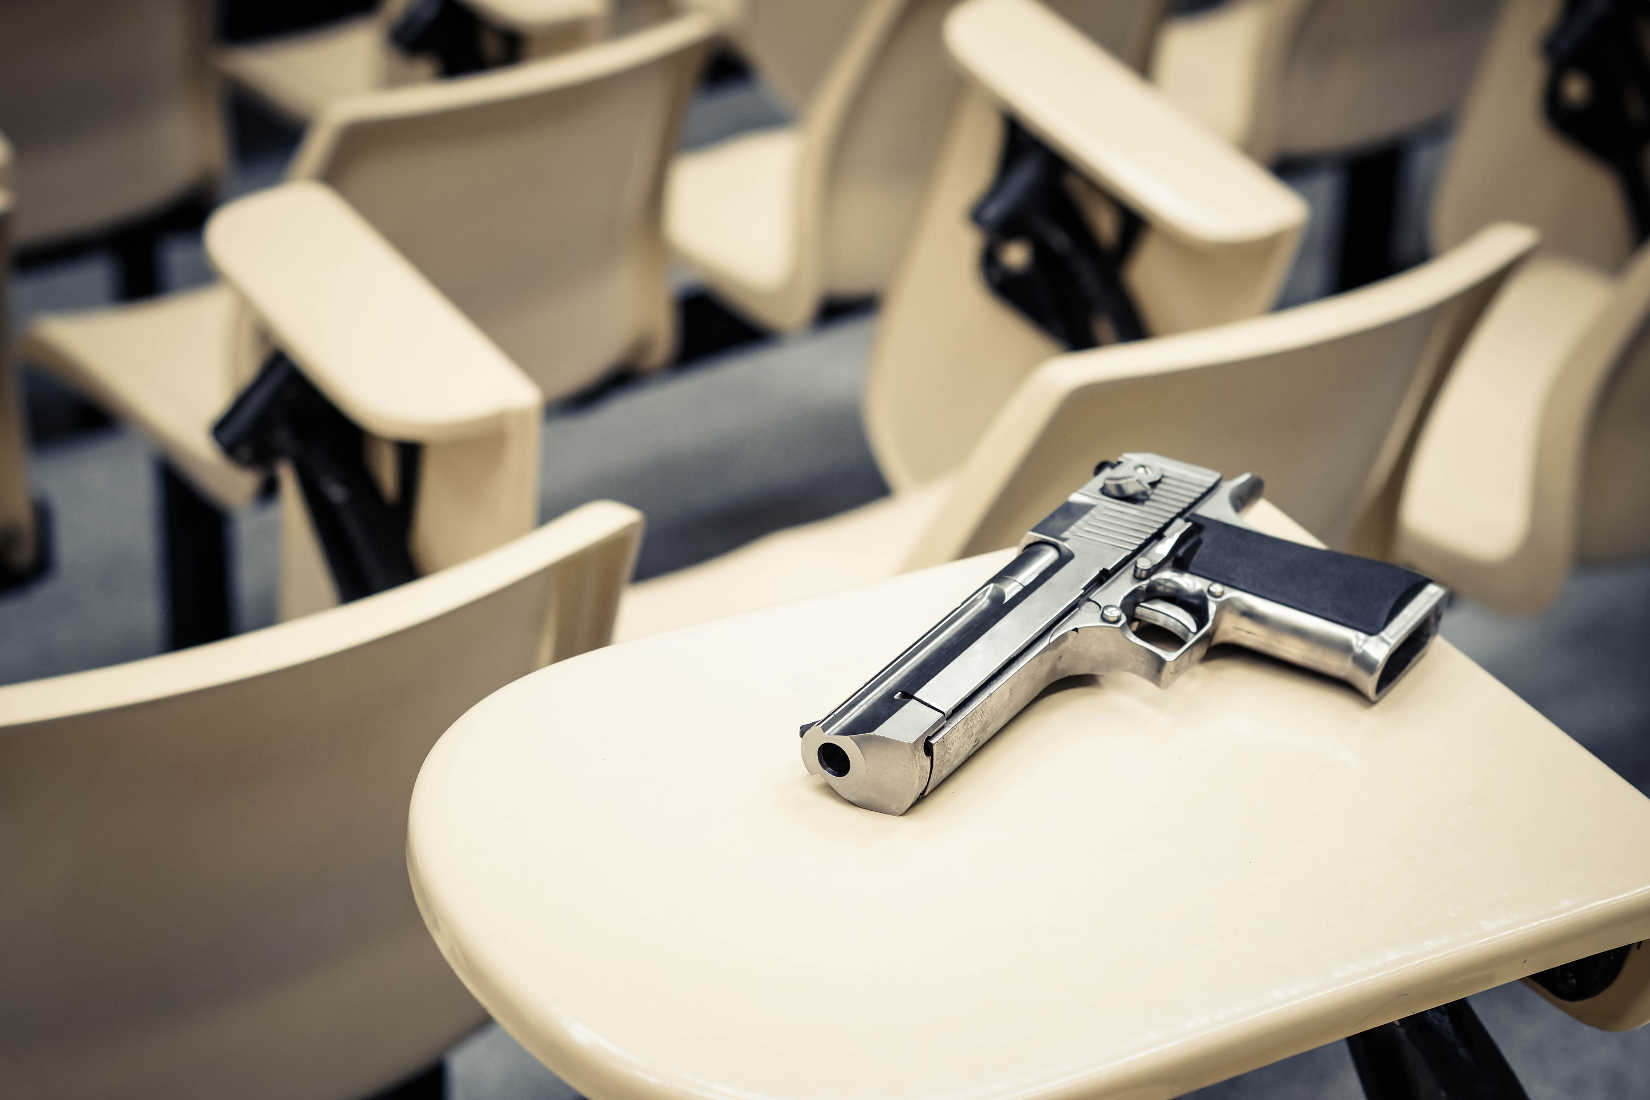 Virginia District Petitions to Arm Teachers